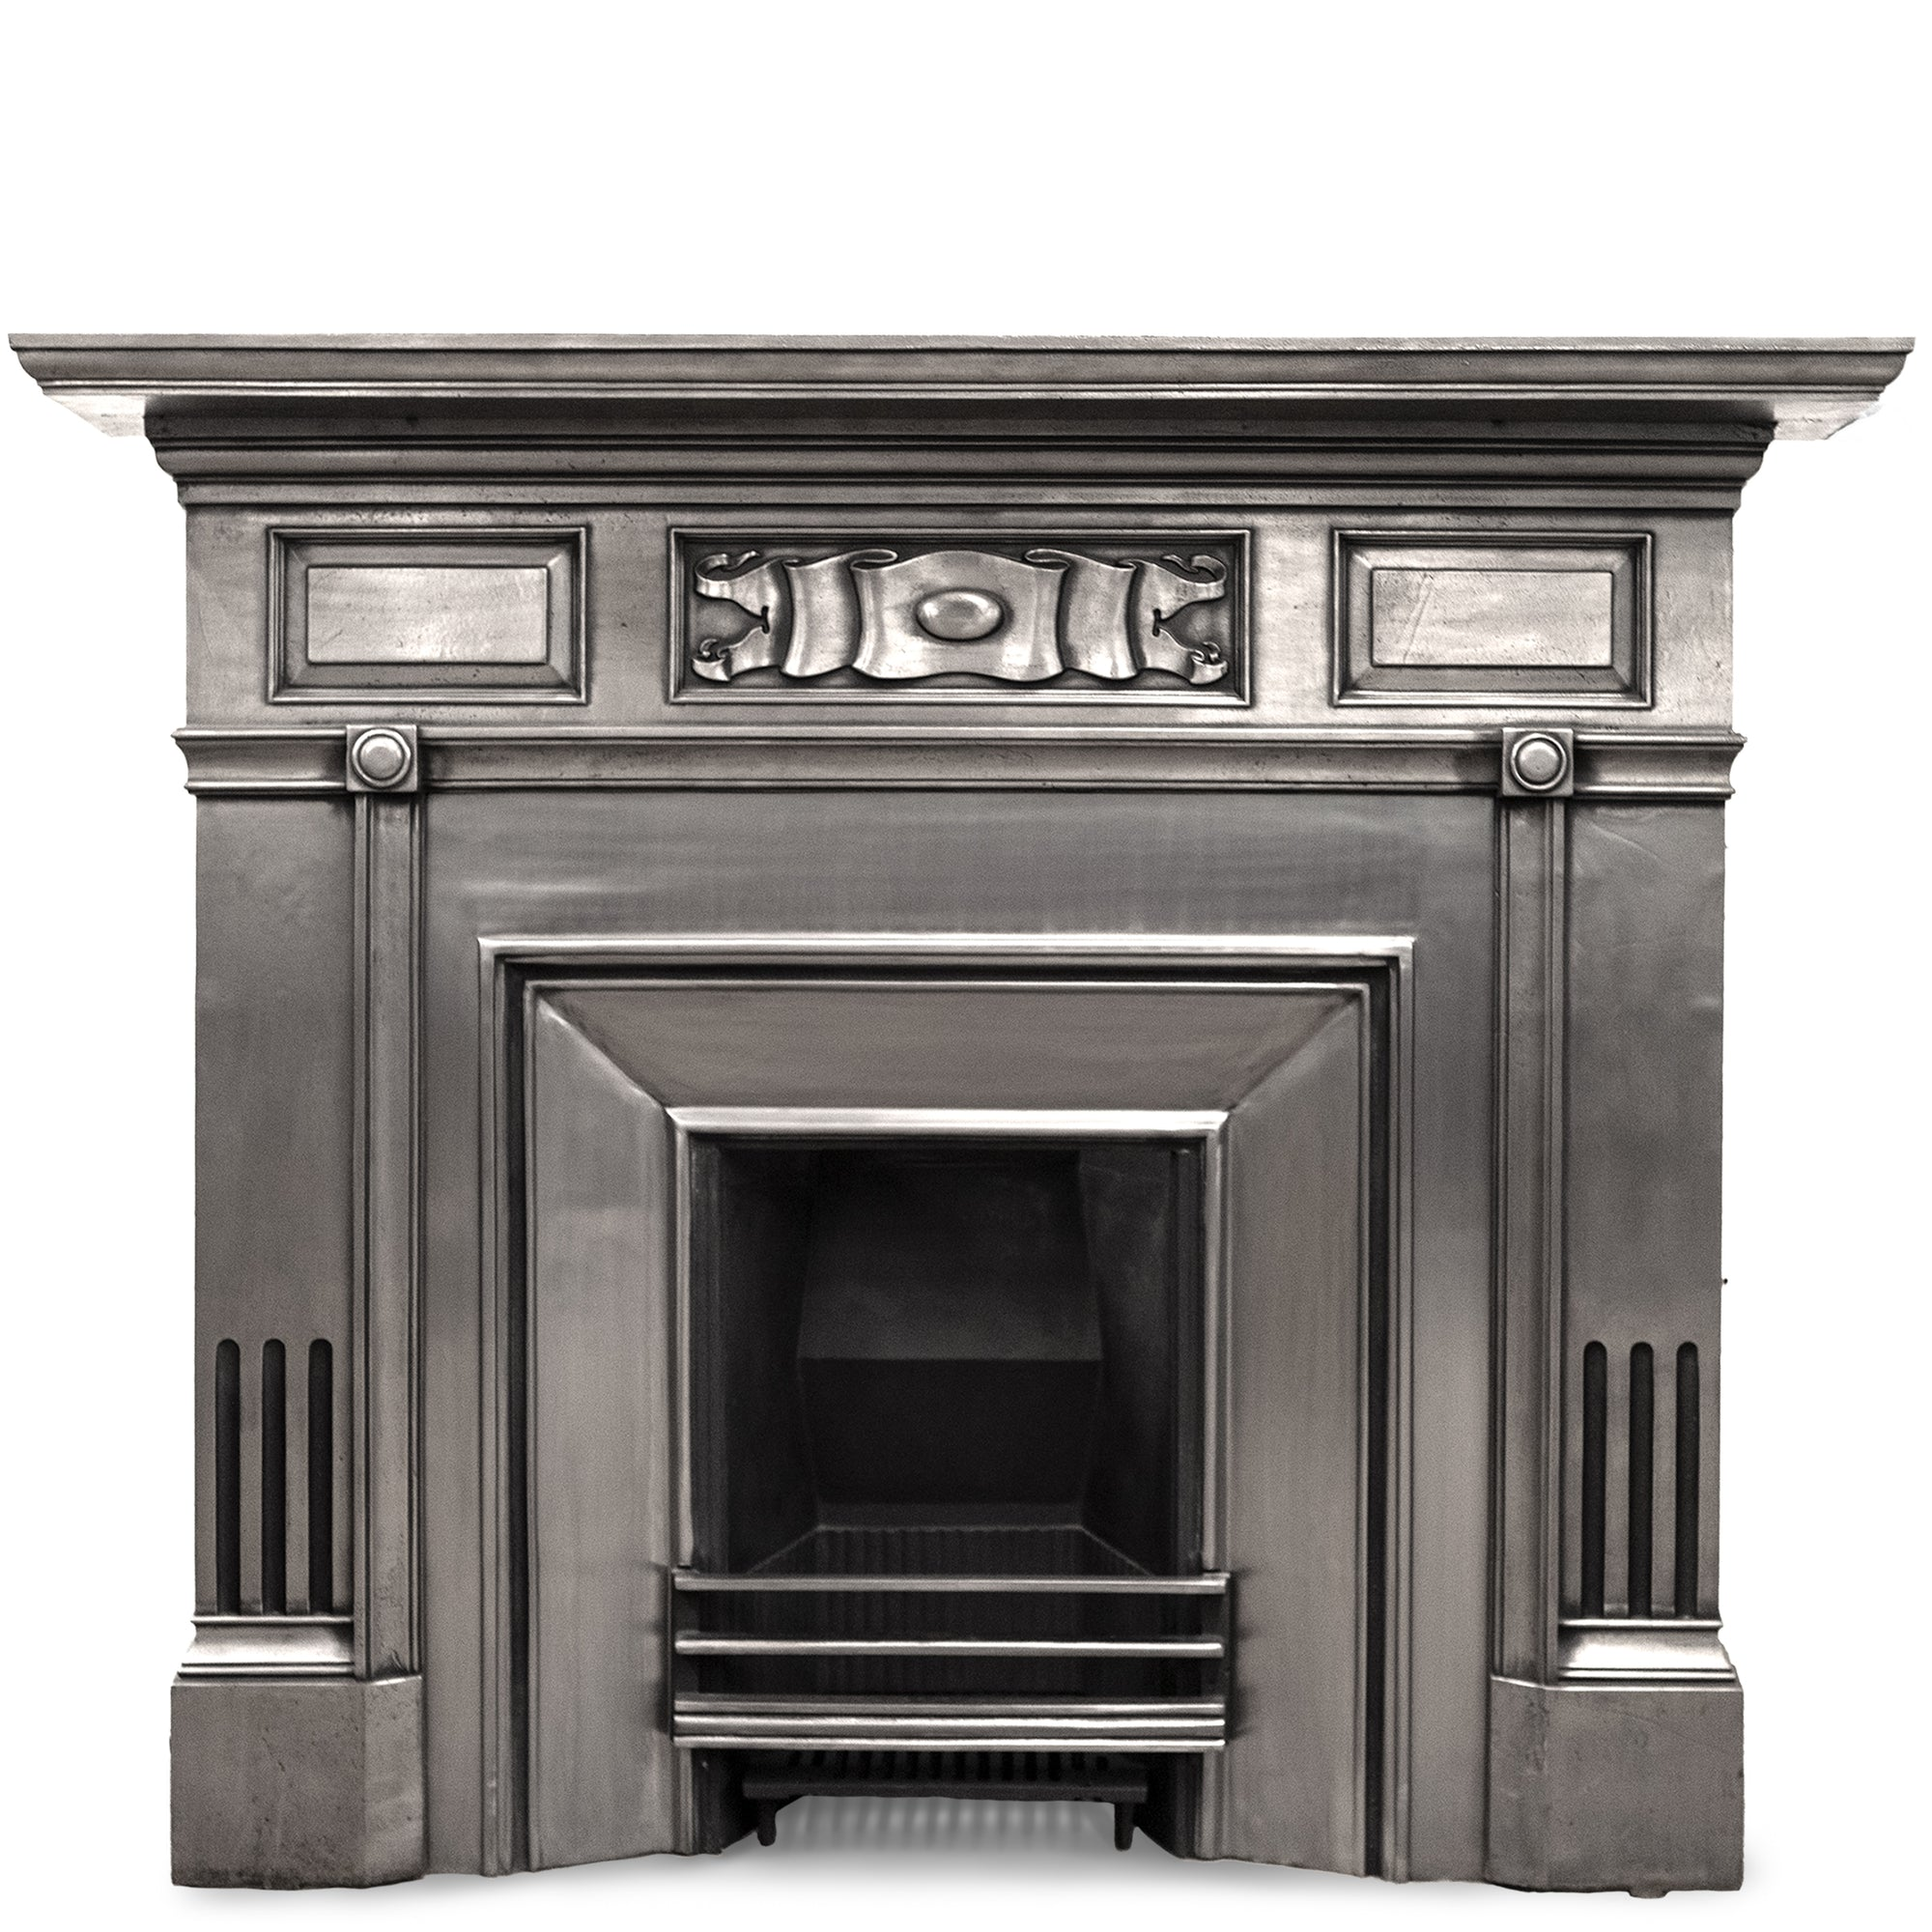 Antique Edwardian Polished Cast Iron Fireplace Surround | The Architectural Forum